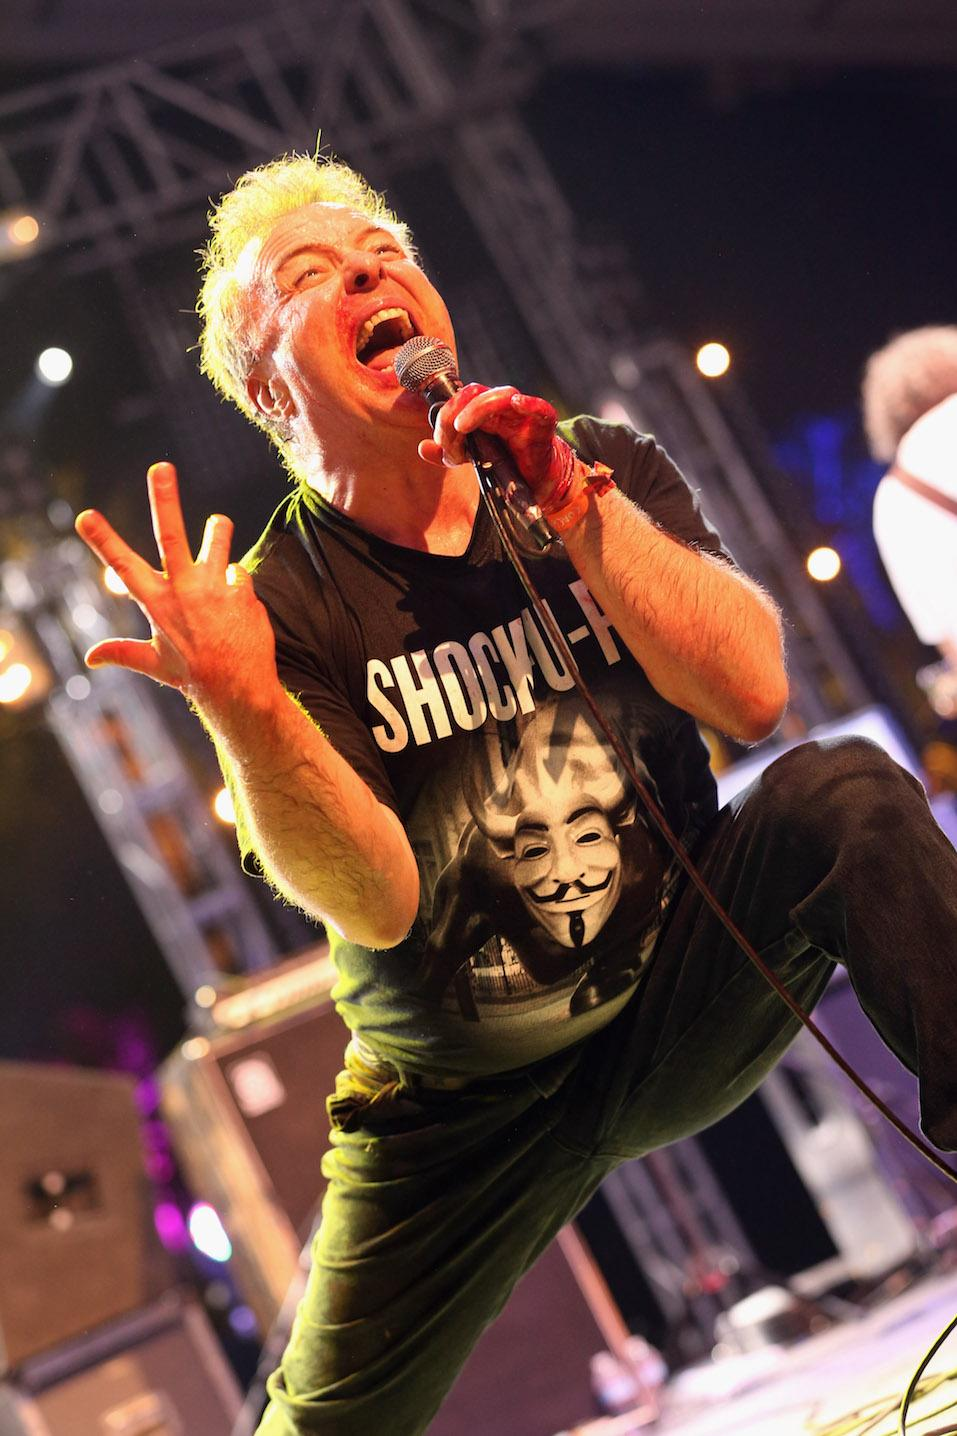 Jello Biafra performs on stage during the 2013 Coachella Valley Music & Arts Festival